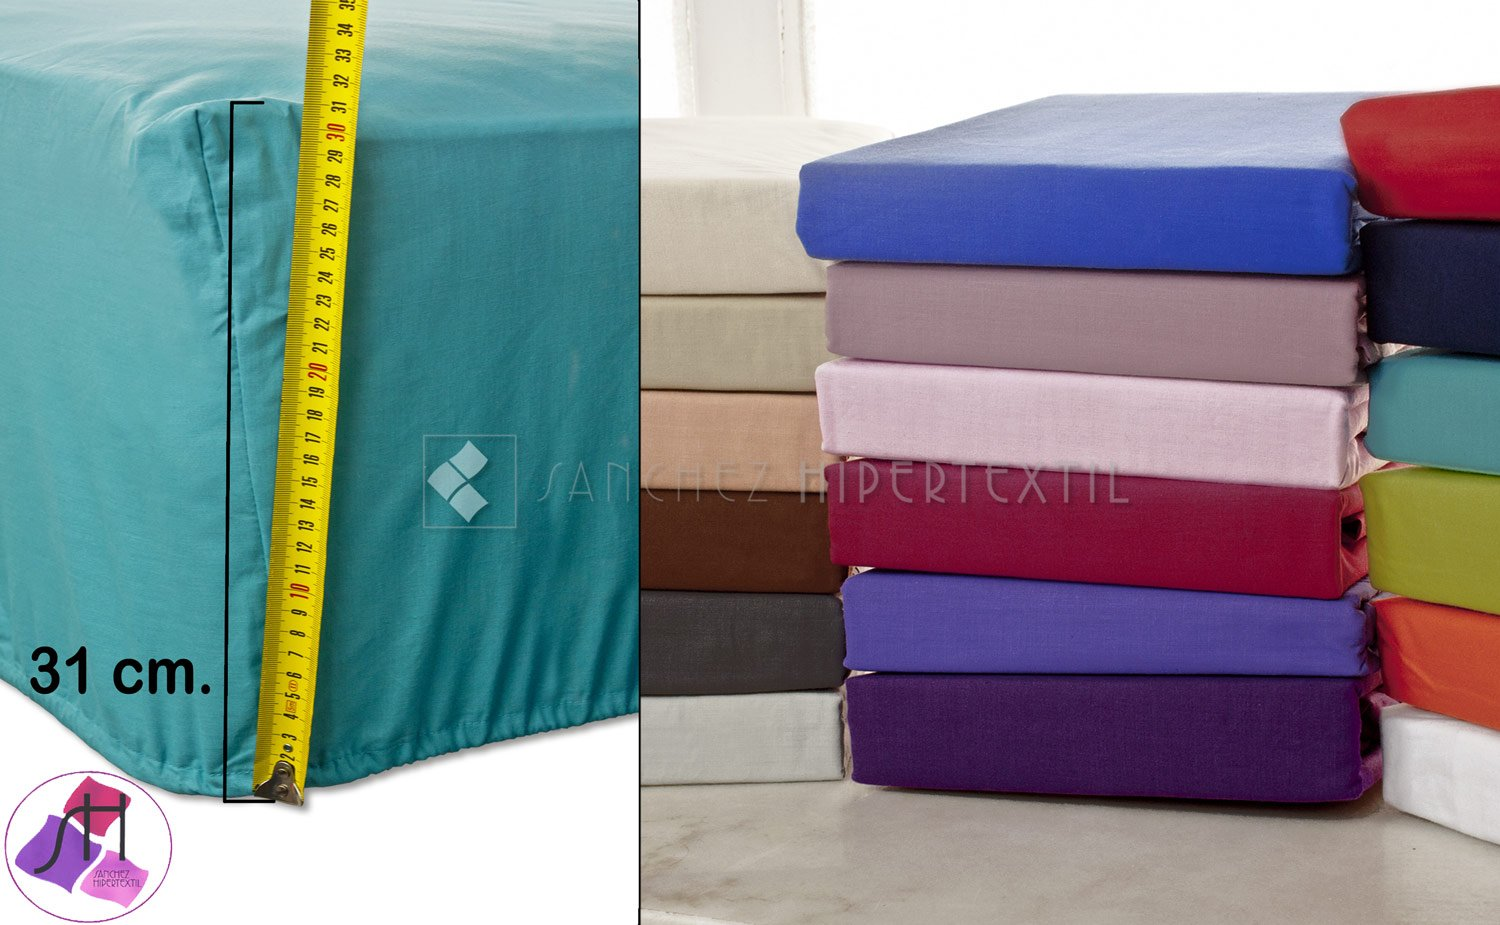 Adjustable bed sheets SH PREMIUM polyester/cotton